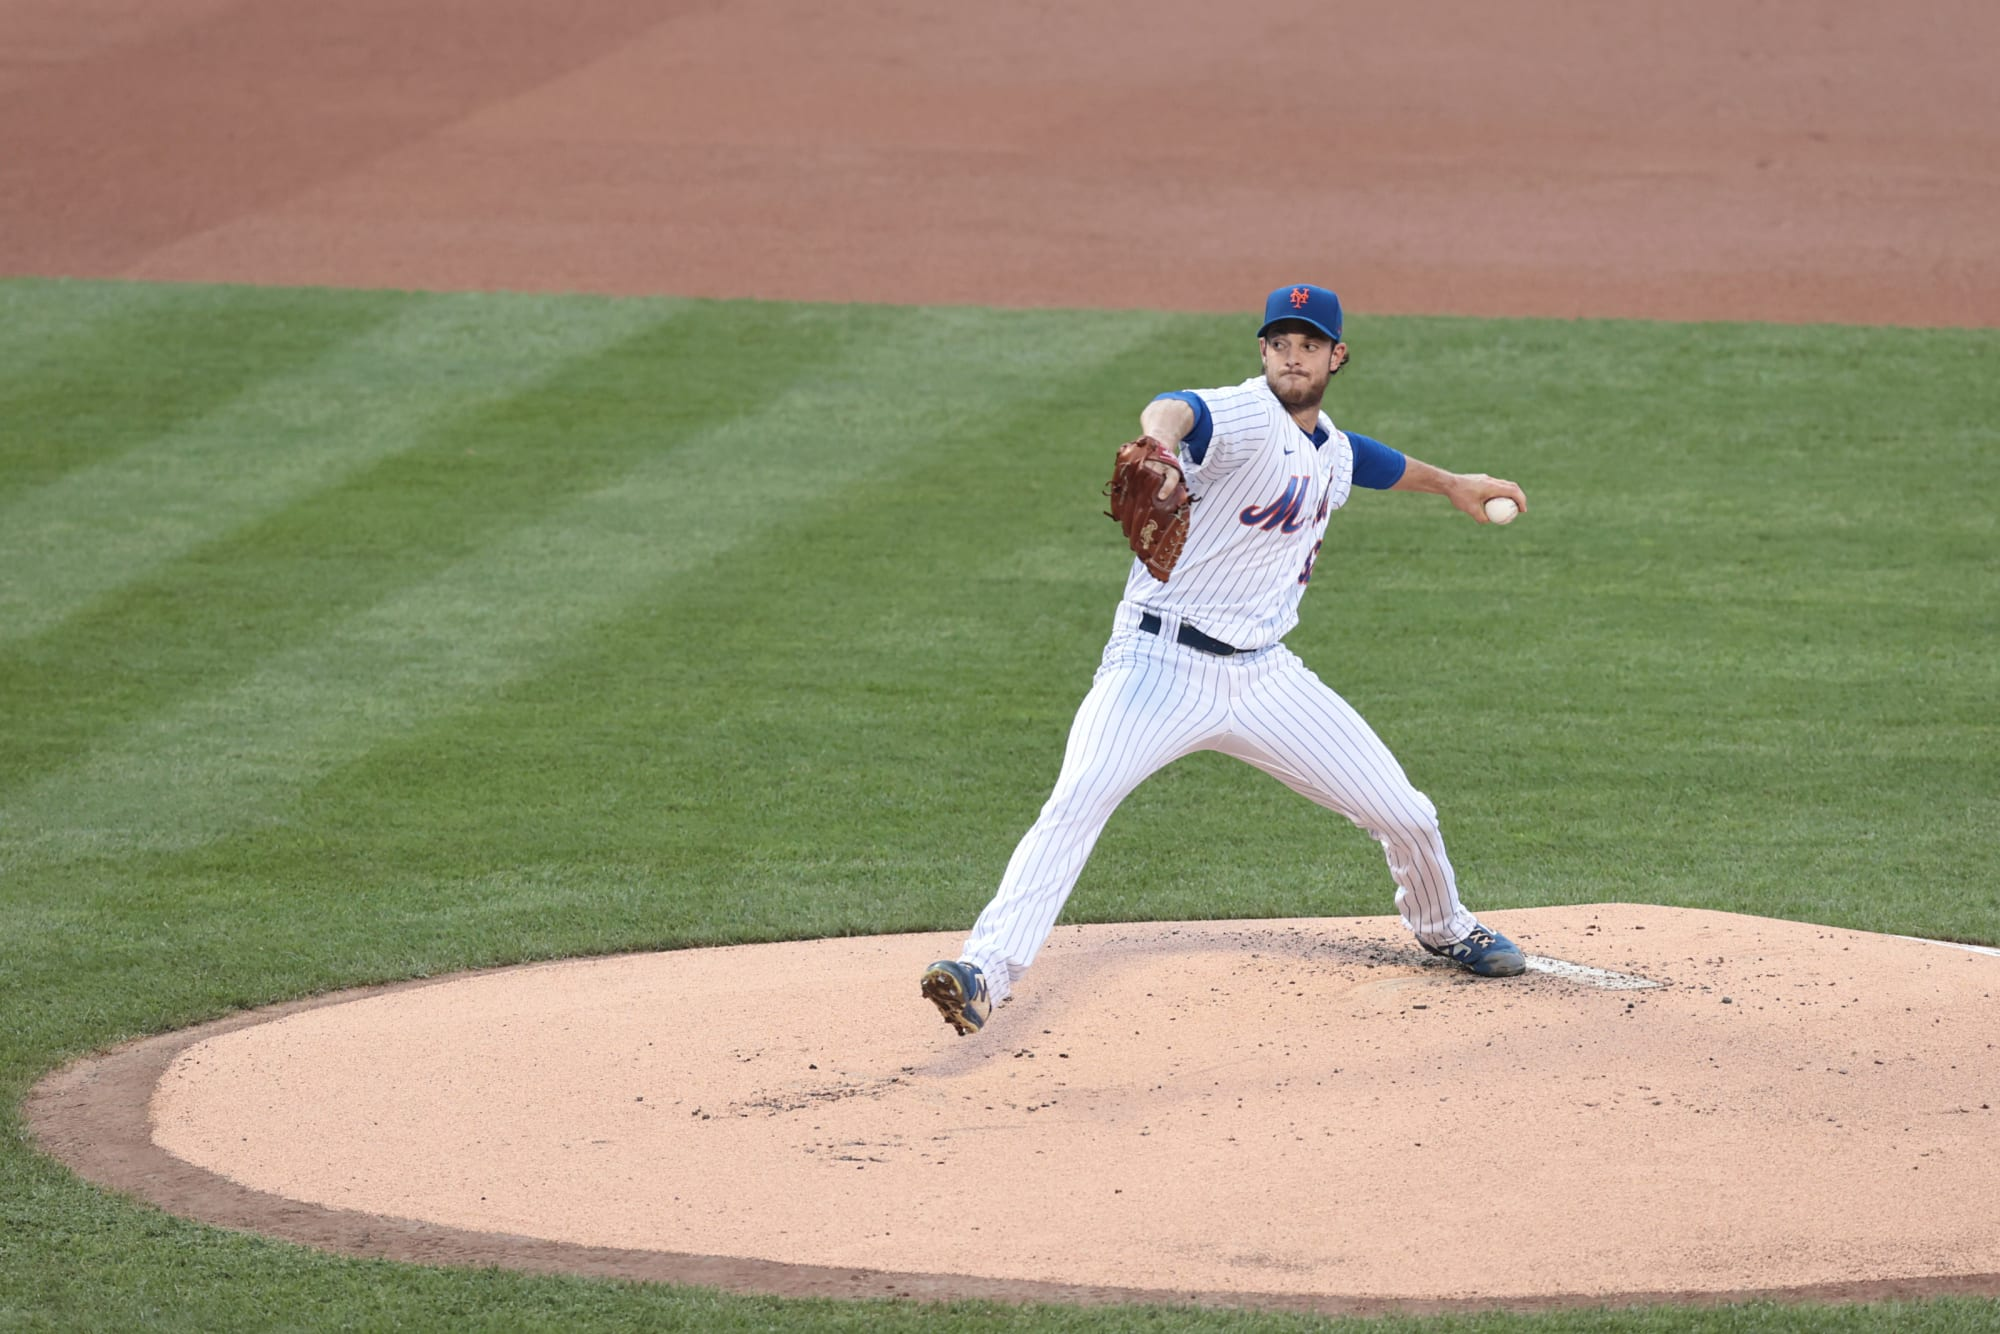 Three Mets players many fans are ready to trade away this winter